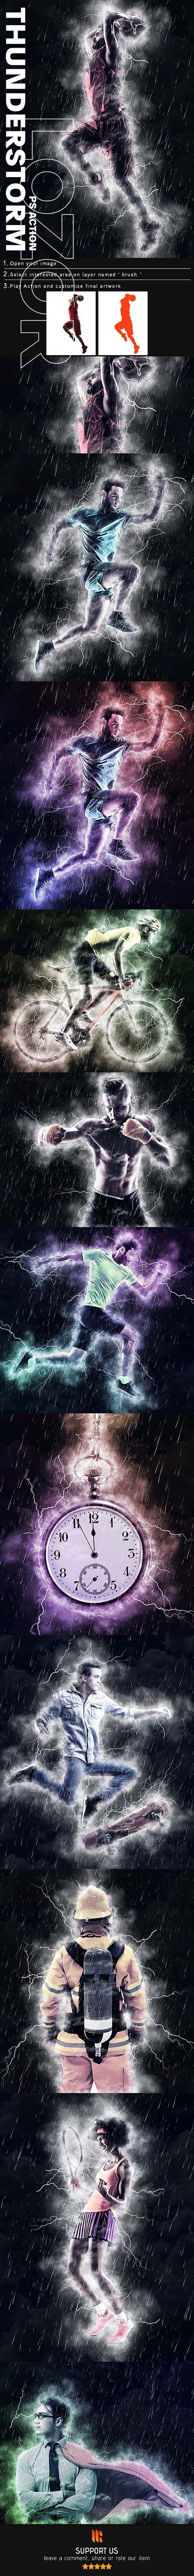 GraphicRiver - Thunderstorm Photoshop Action 25009367